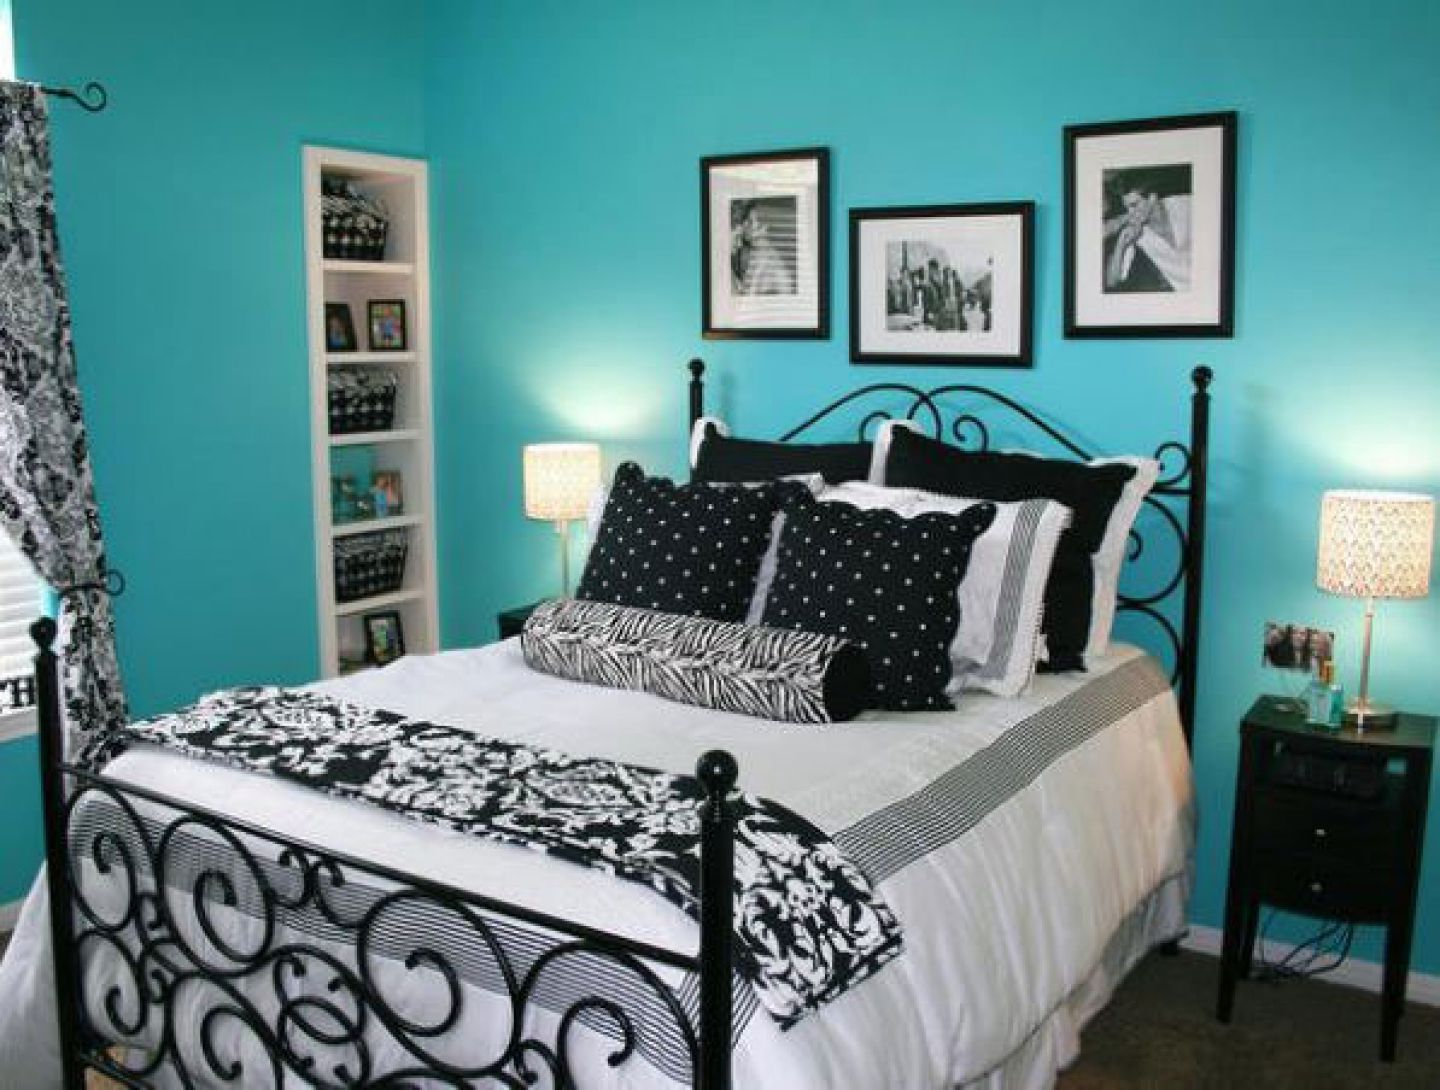 Blue room colors for teens - 17 Best Images About Teen Girls Rooms On Pinterest Girls Bedroom Colors Tween And Comforter